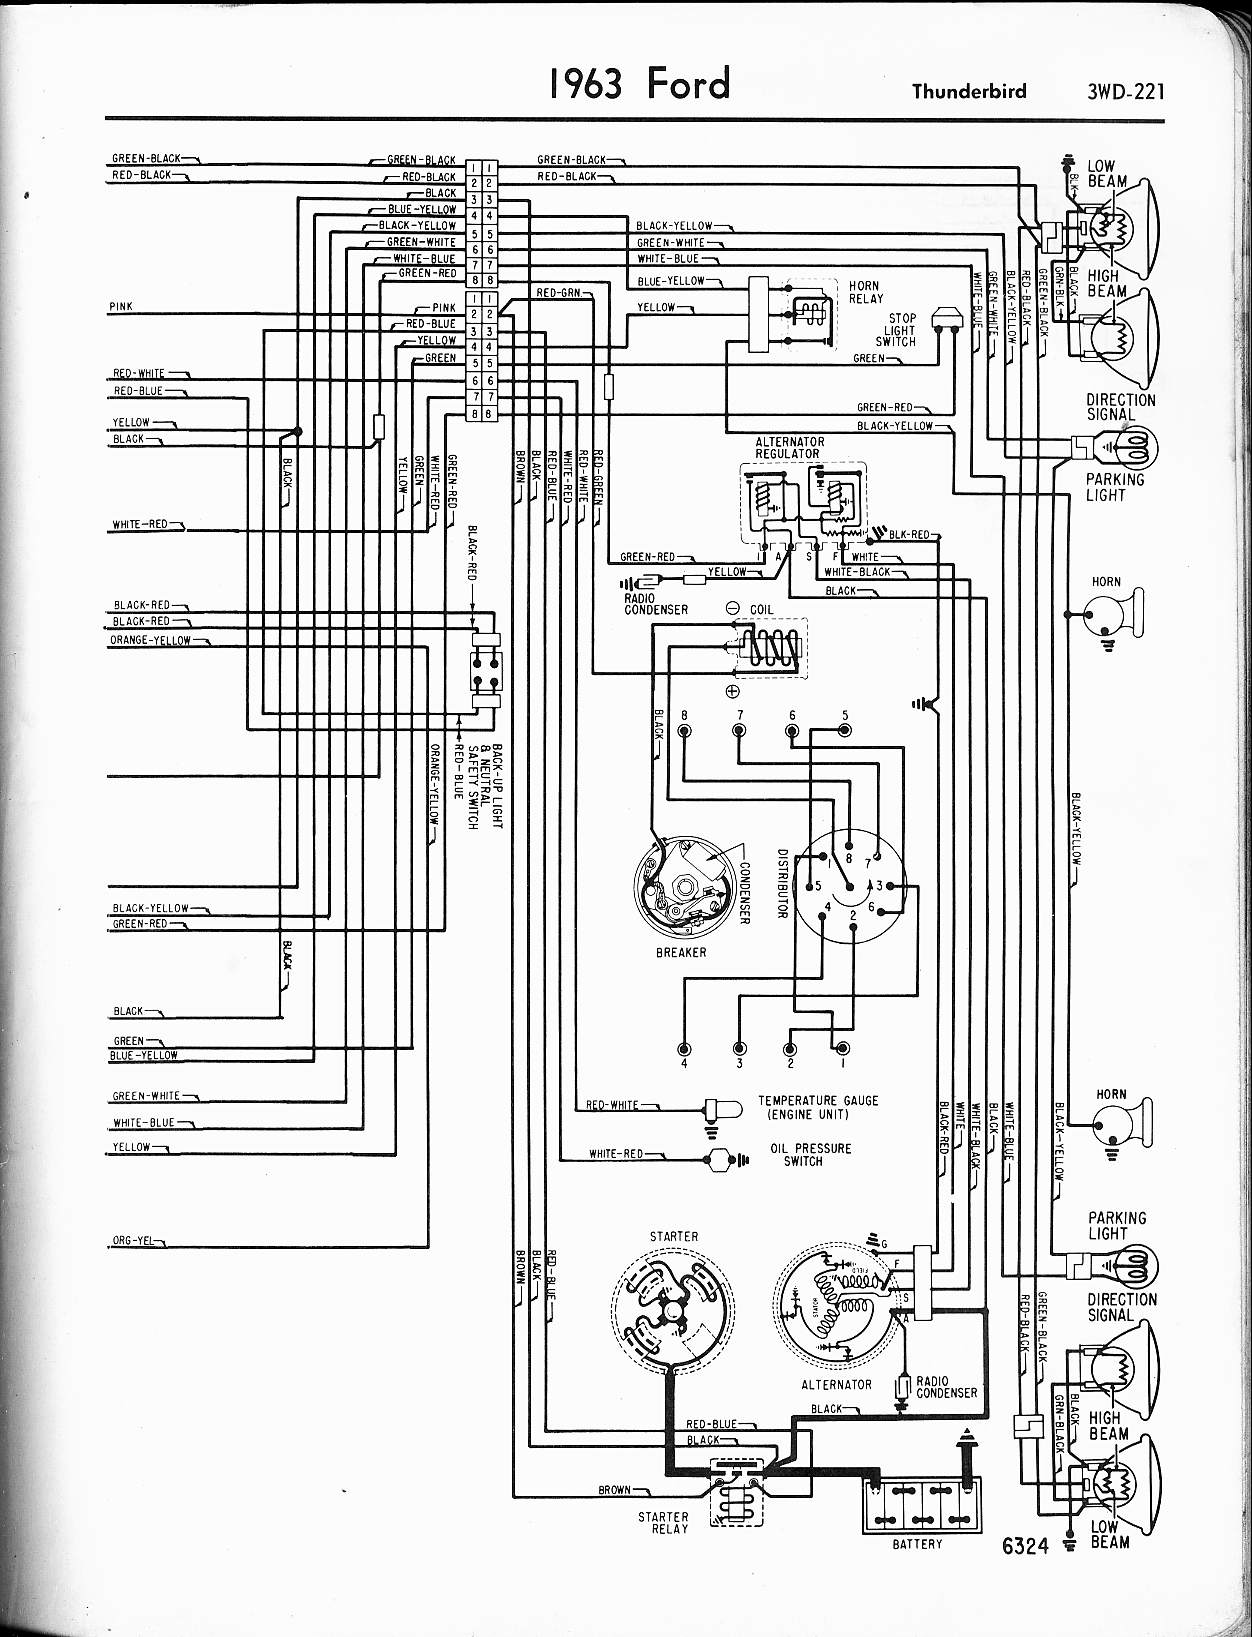 1308305 Diagram Showing Spark Plug Wires To Coil Pack also 3 5 Olds Engine Diagram also 6bjdx Ford Ranger 4x4 05 Ranger Headlights Don T Work as well 4rifv Explorer Go Changing Power Window Ground Wire further Discussion T11903 ds553473. on 2006 ford mustang fuse diagram